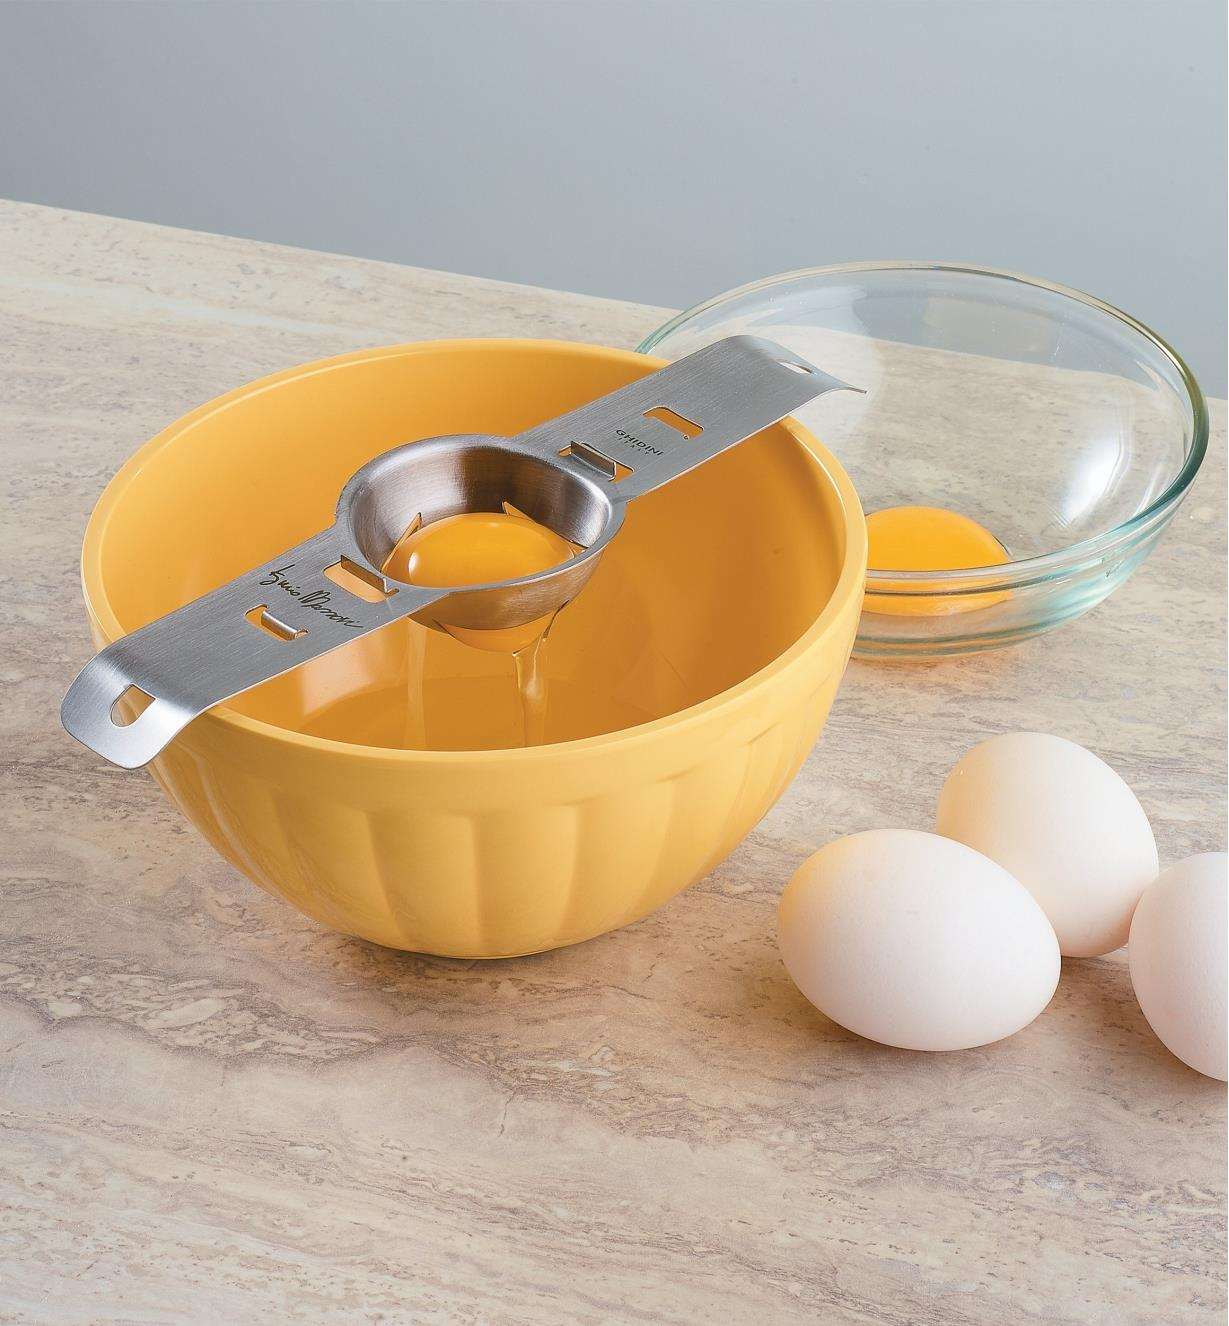 Egg separator sits on a bowl, with a yolk in the slotted cup and egg white underneath in the bowl